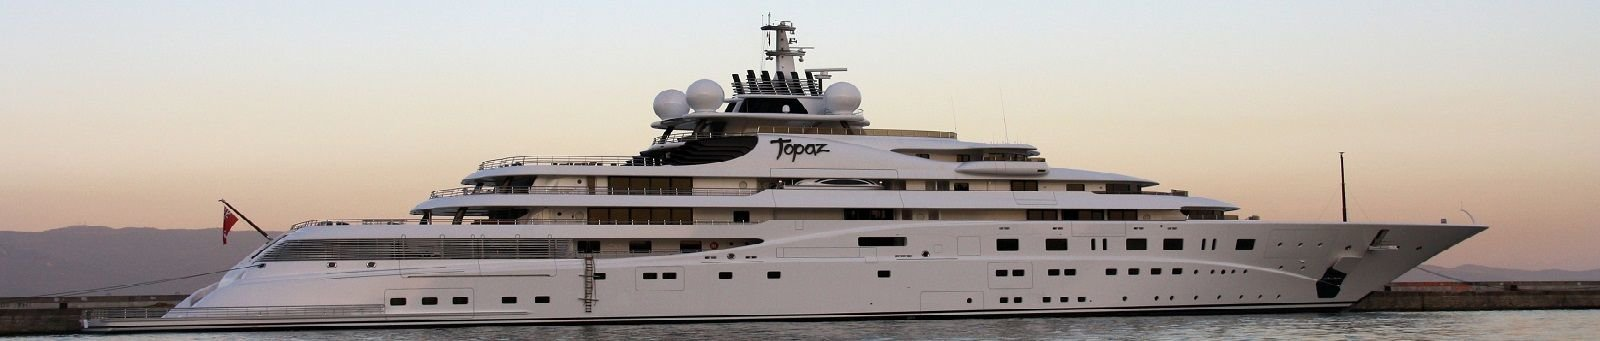 Greatness | Top 10 Largest yachts equipped with H&H HVAC systems